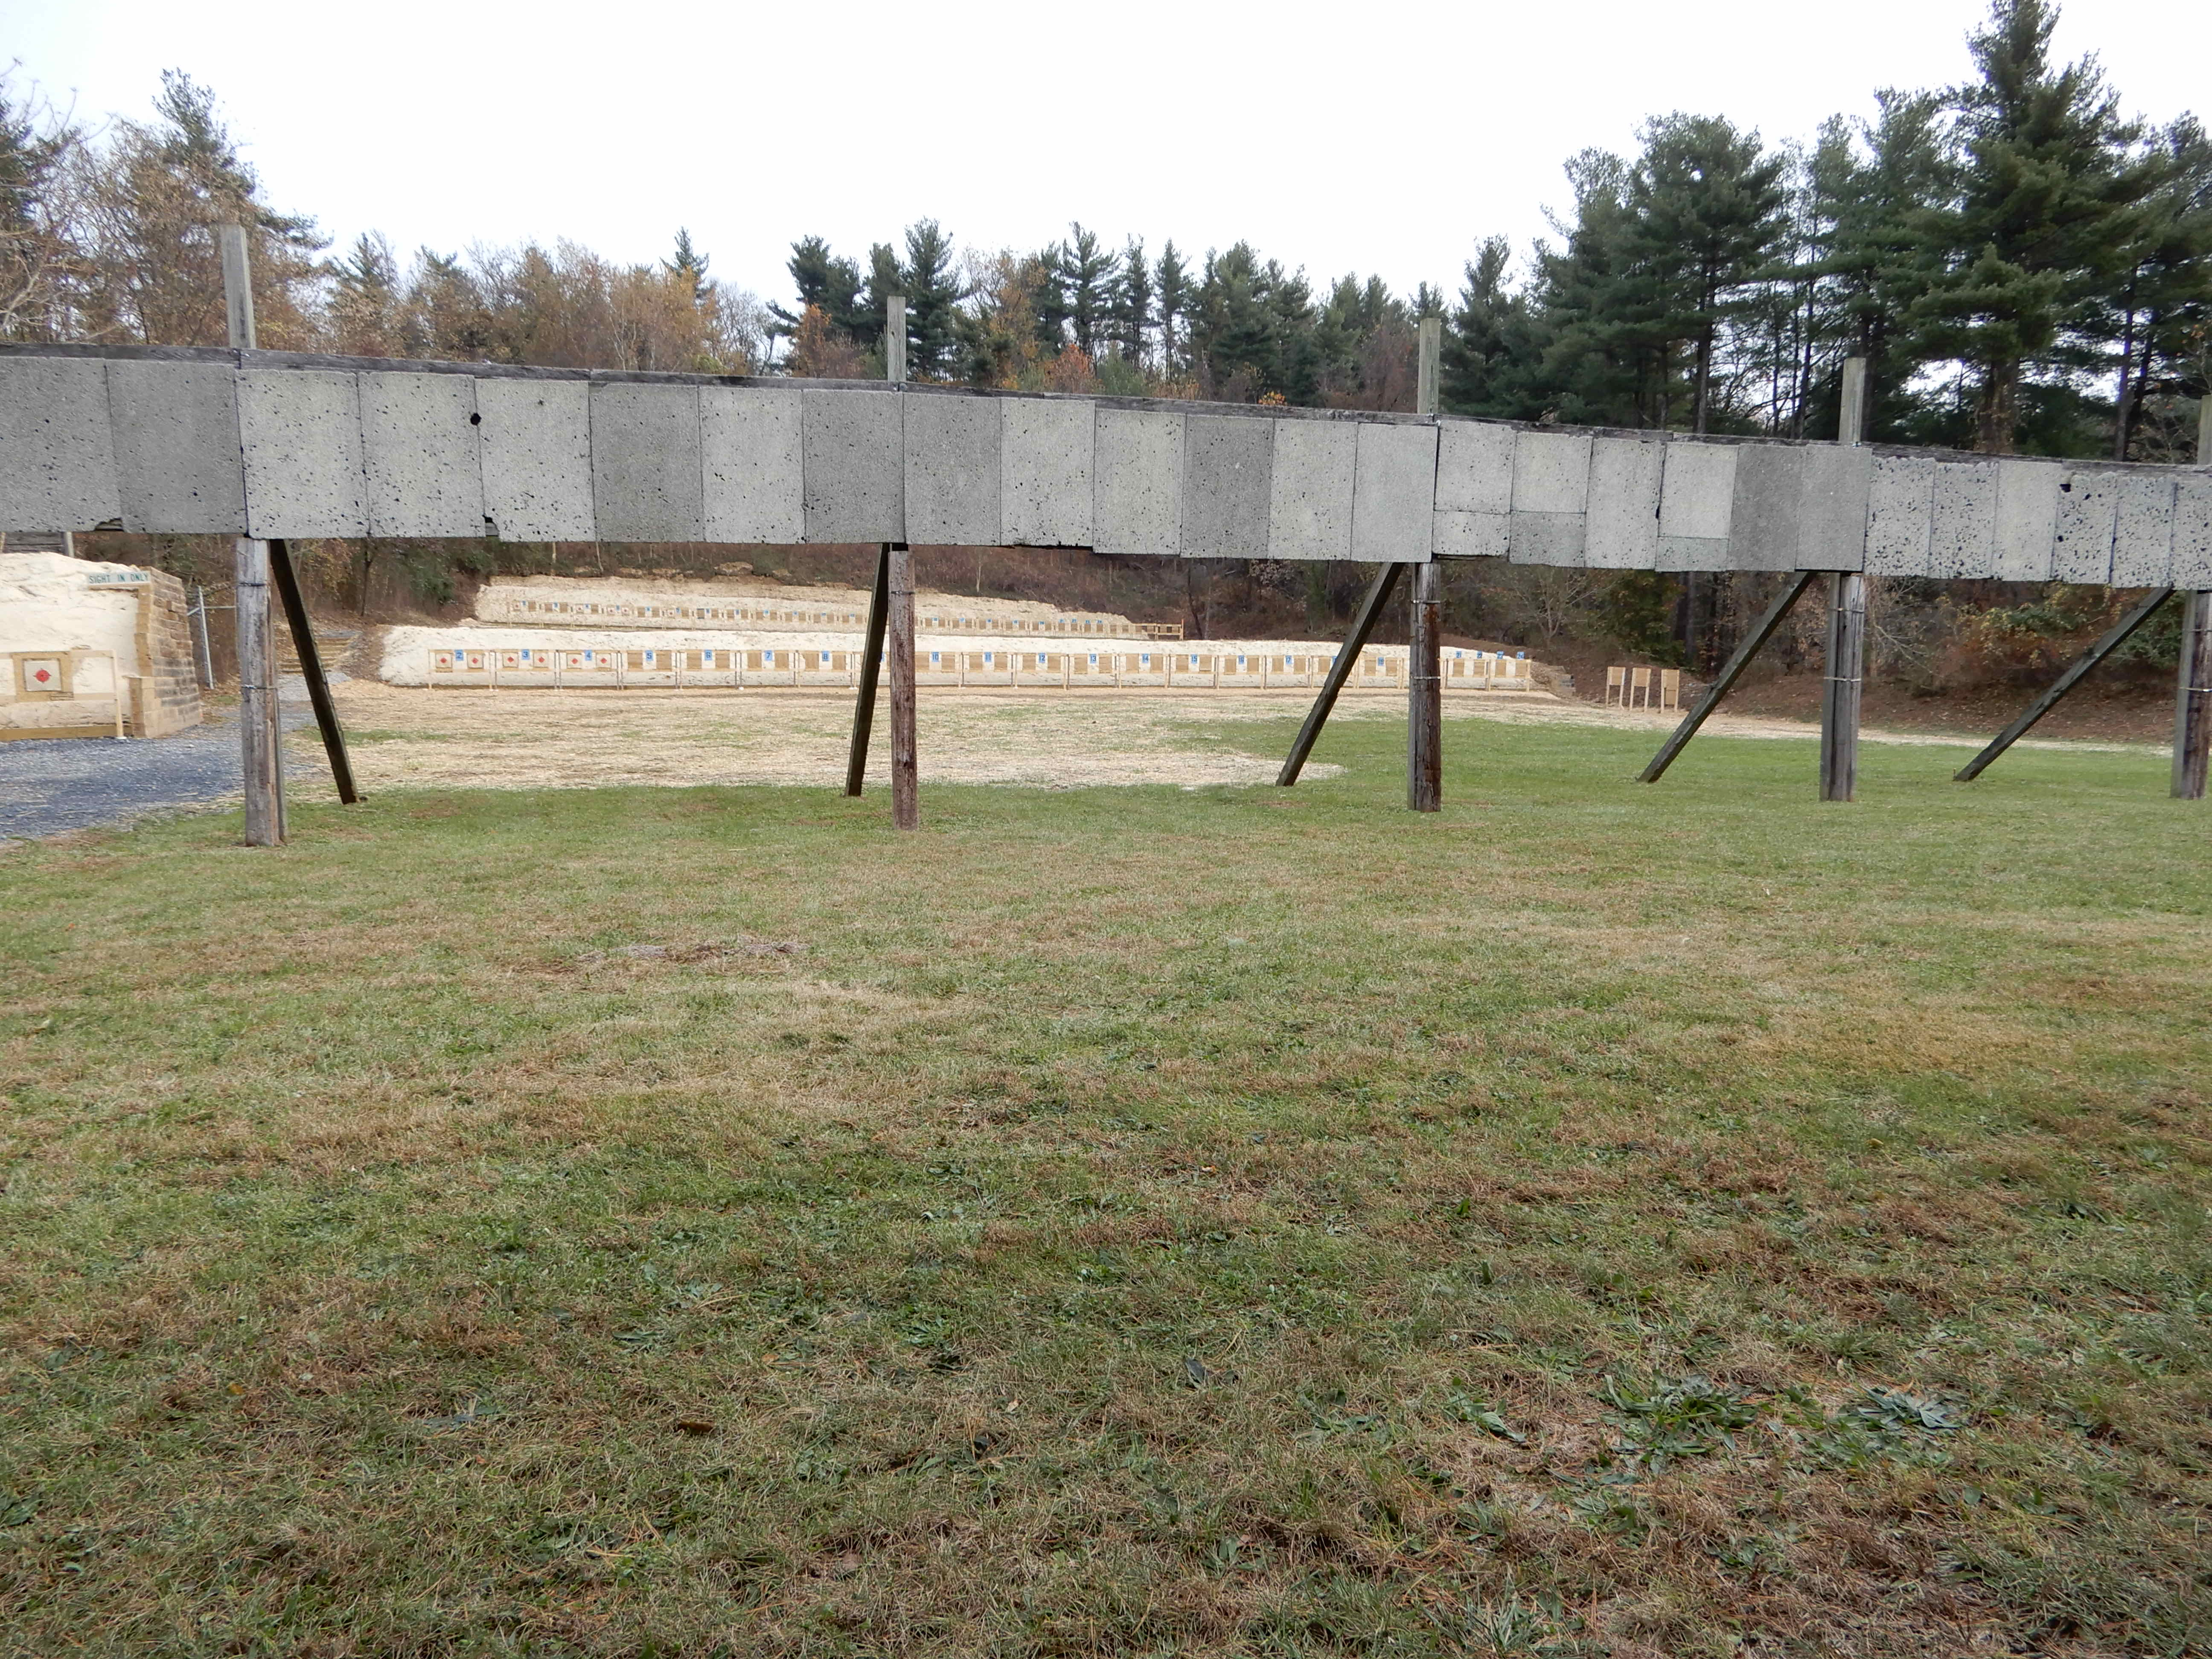 50 and 100 Yard Rifle Line with Baffles